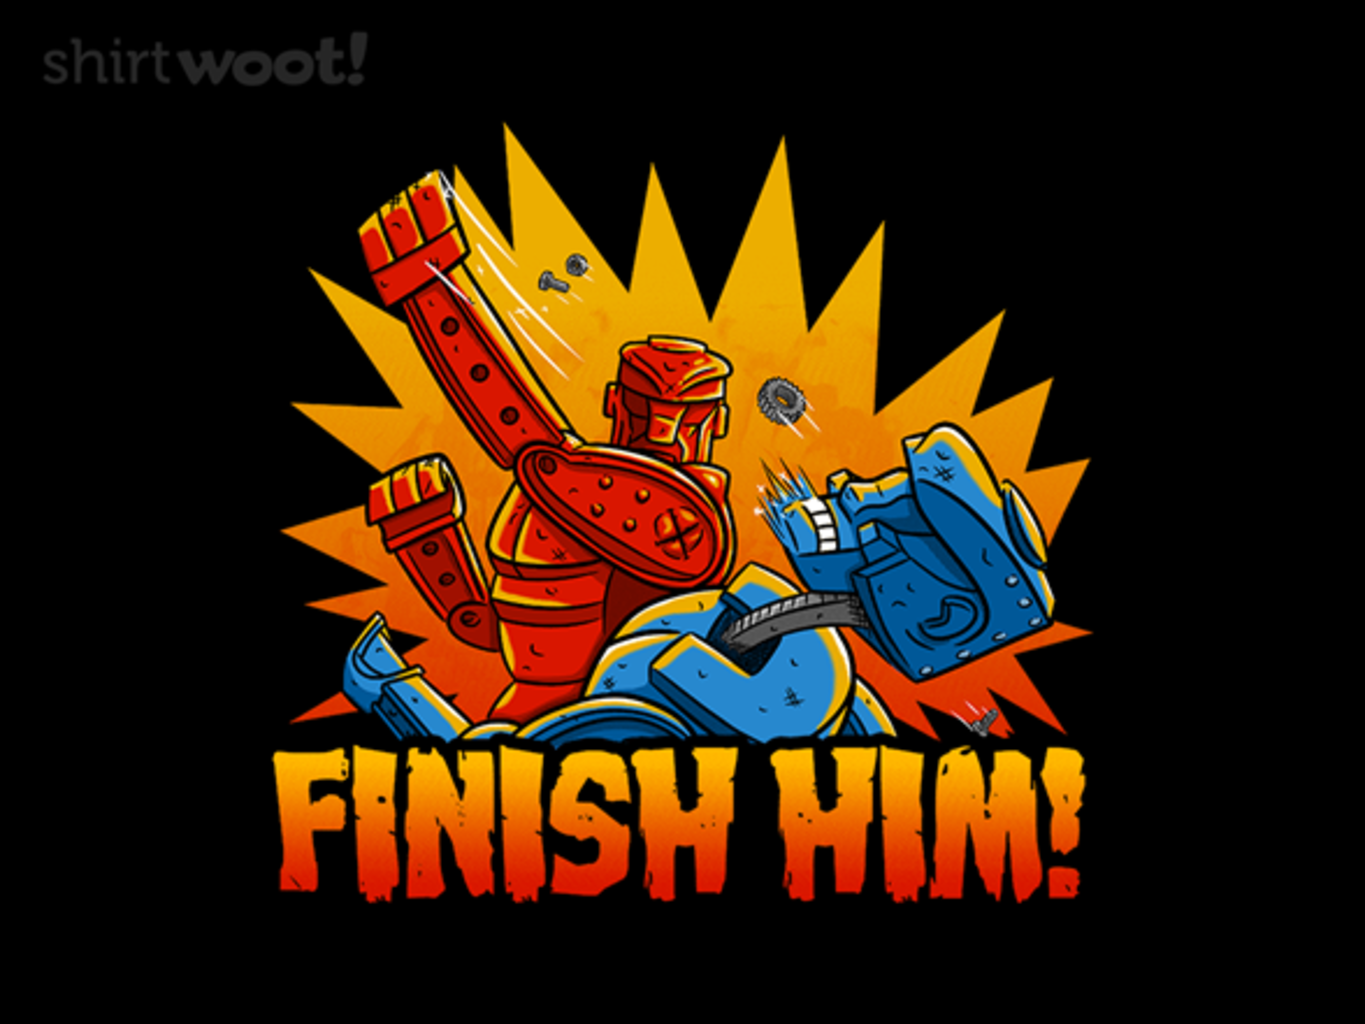 Woot!: Finish Him!